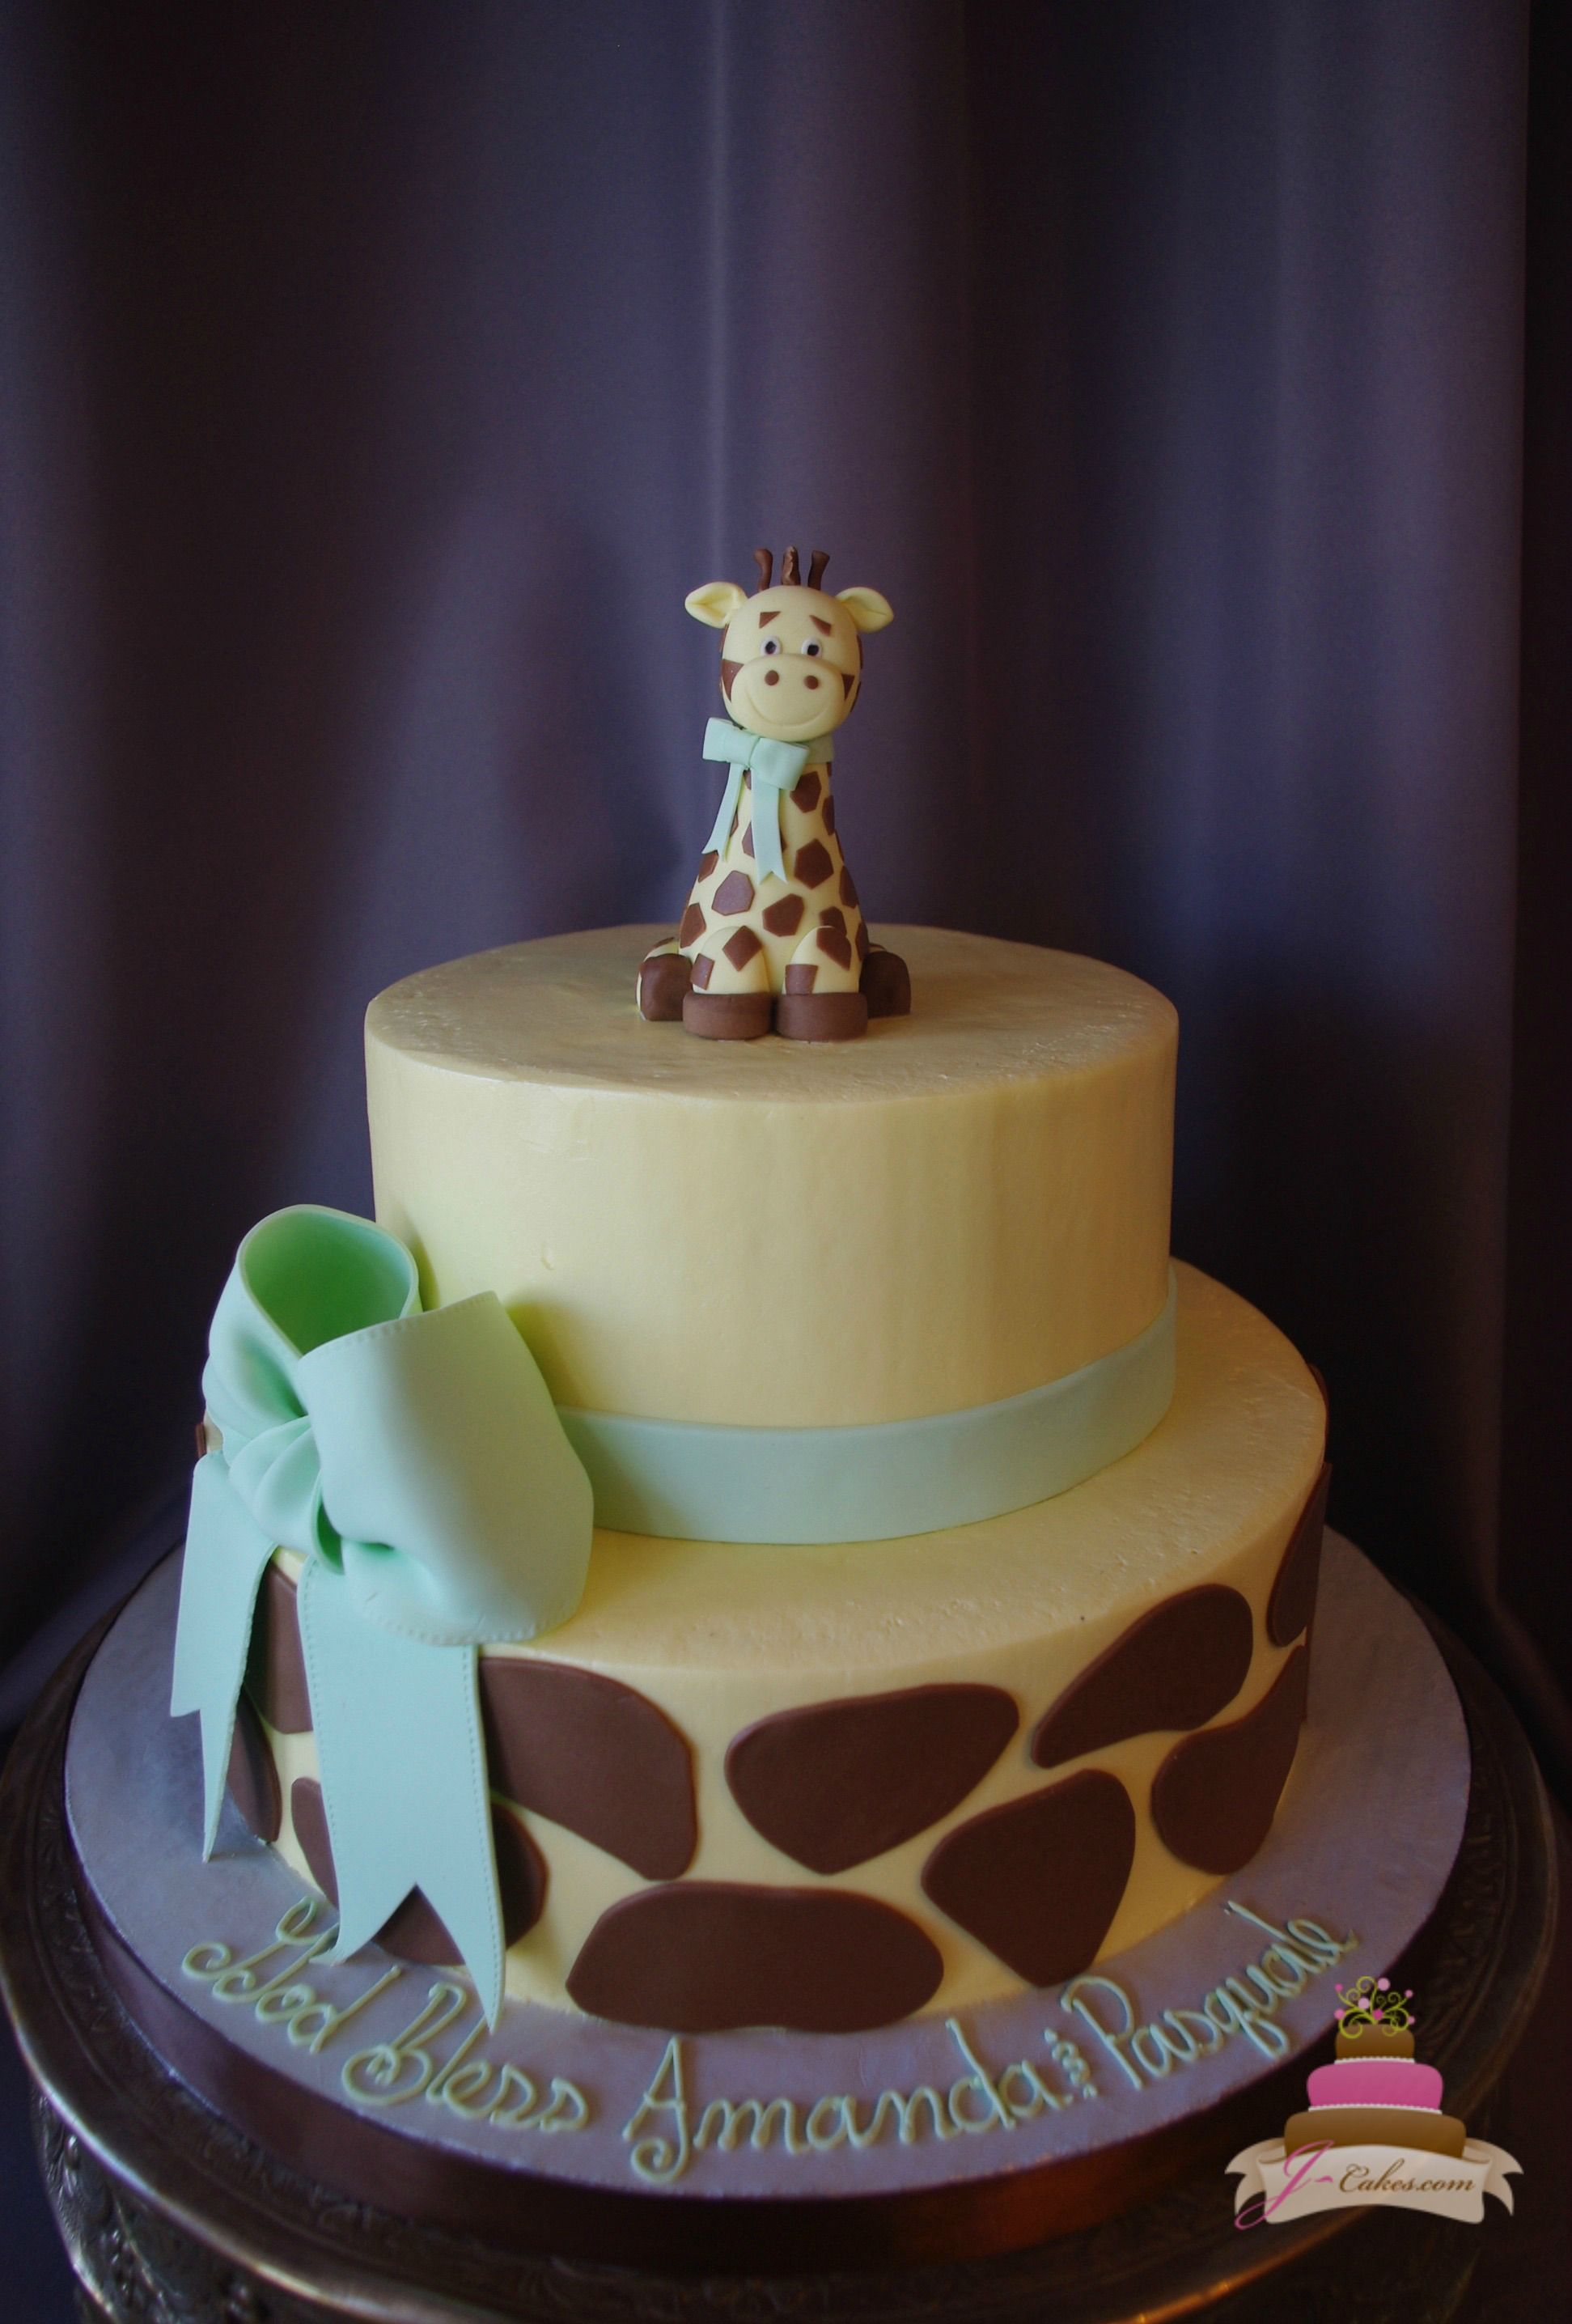 Modern 233) Giraffe Theme Baby Shower Cake | Baby Shower Cakes | Pinterest intended for Giraffe Themed Baby Shower